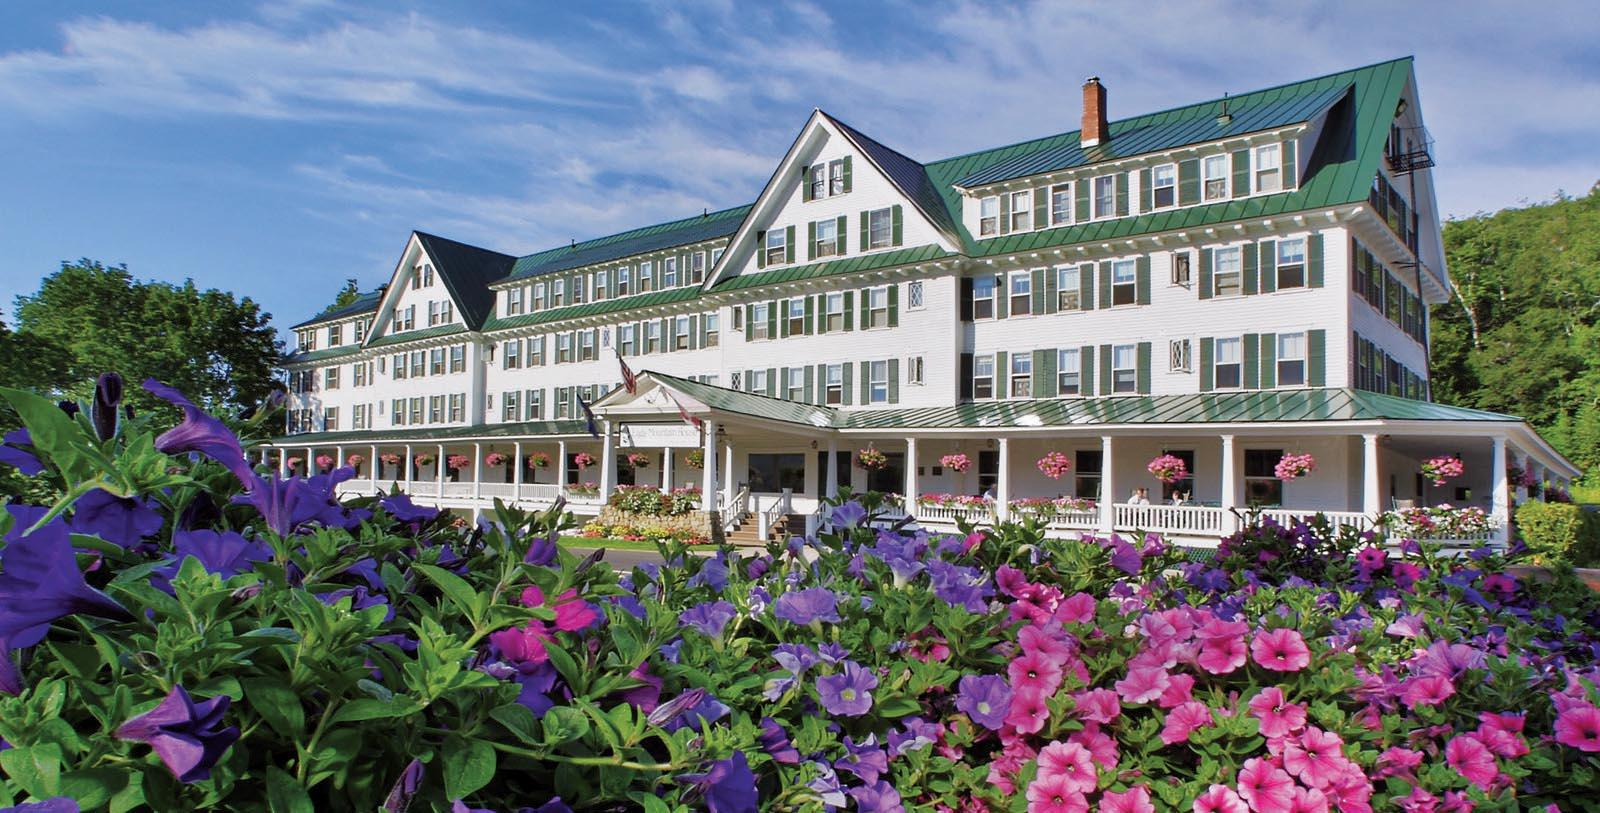 Image of Hotel exterior at Eagle Mountain House, 1879, Member of Historic Hotels of America, in Jackson, New Hampshire, Special Offers, Discounted Rates, Families, Romantic Escape, Honeymoons, Anniversaries, Reunions